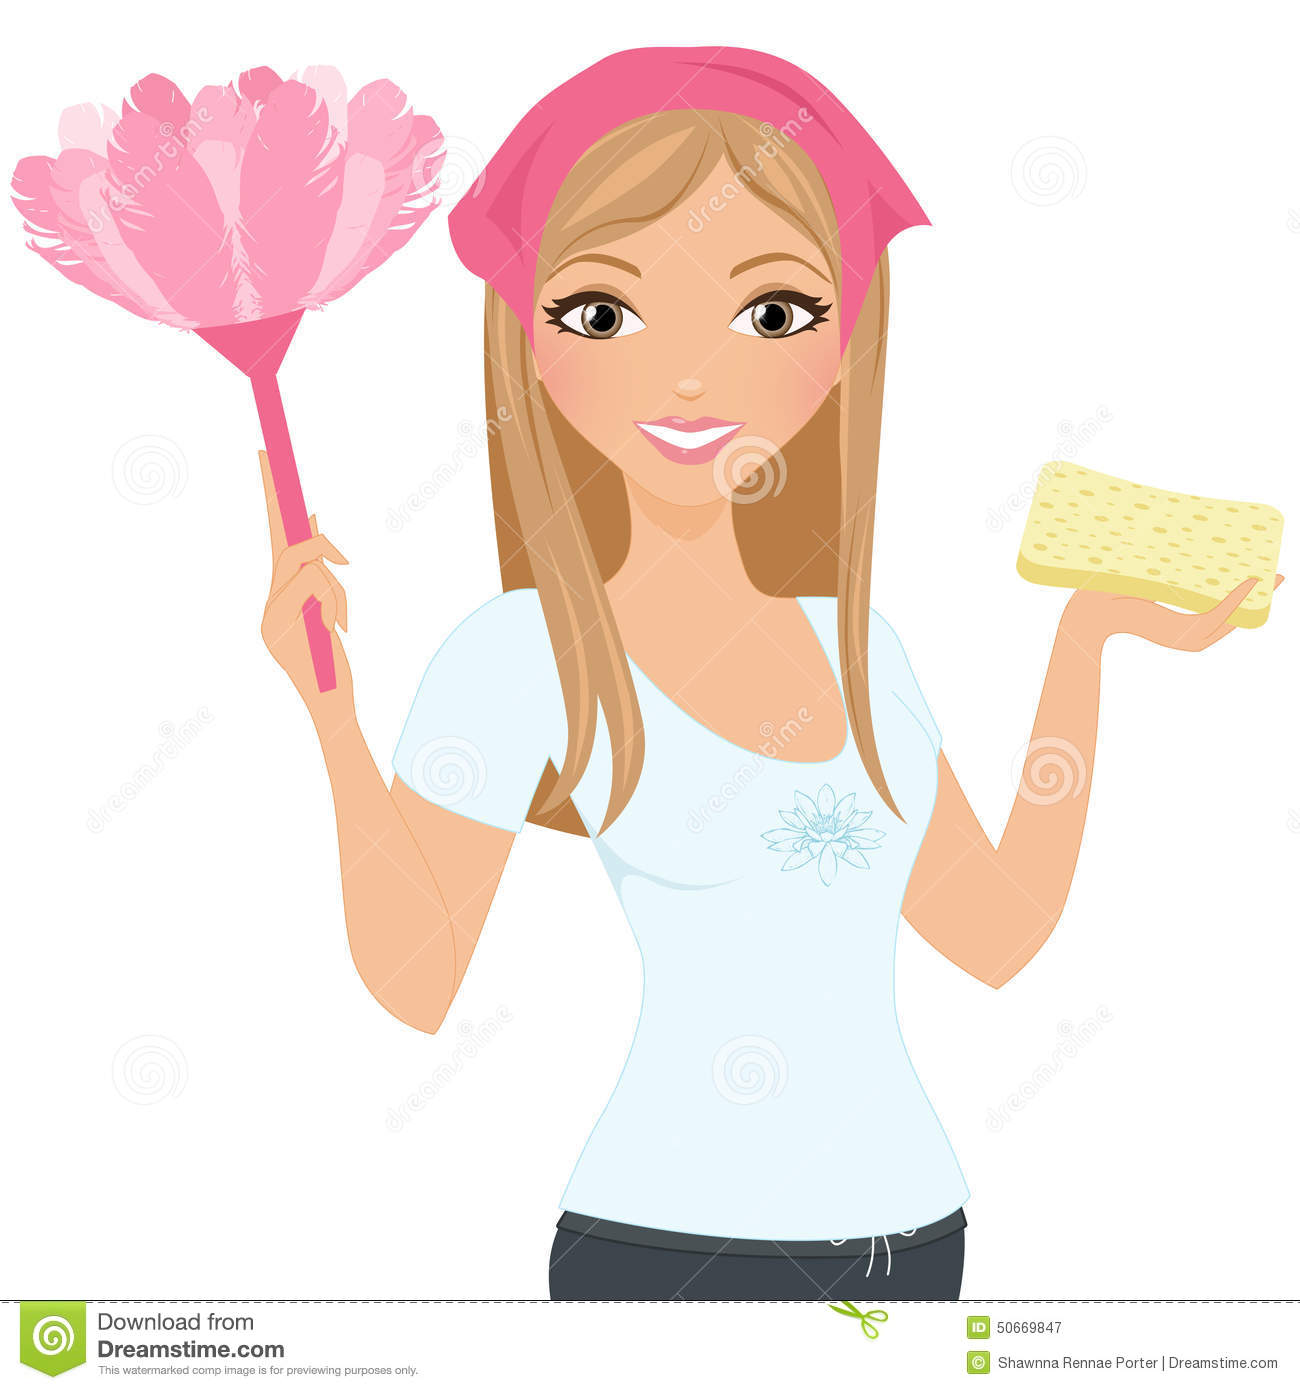 cleaning-ladies-clipart-15.jpg